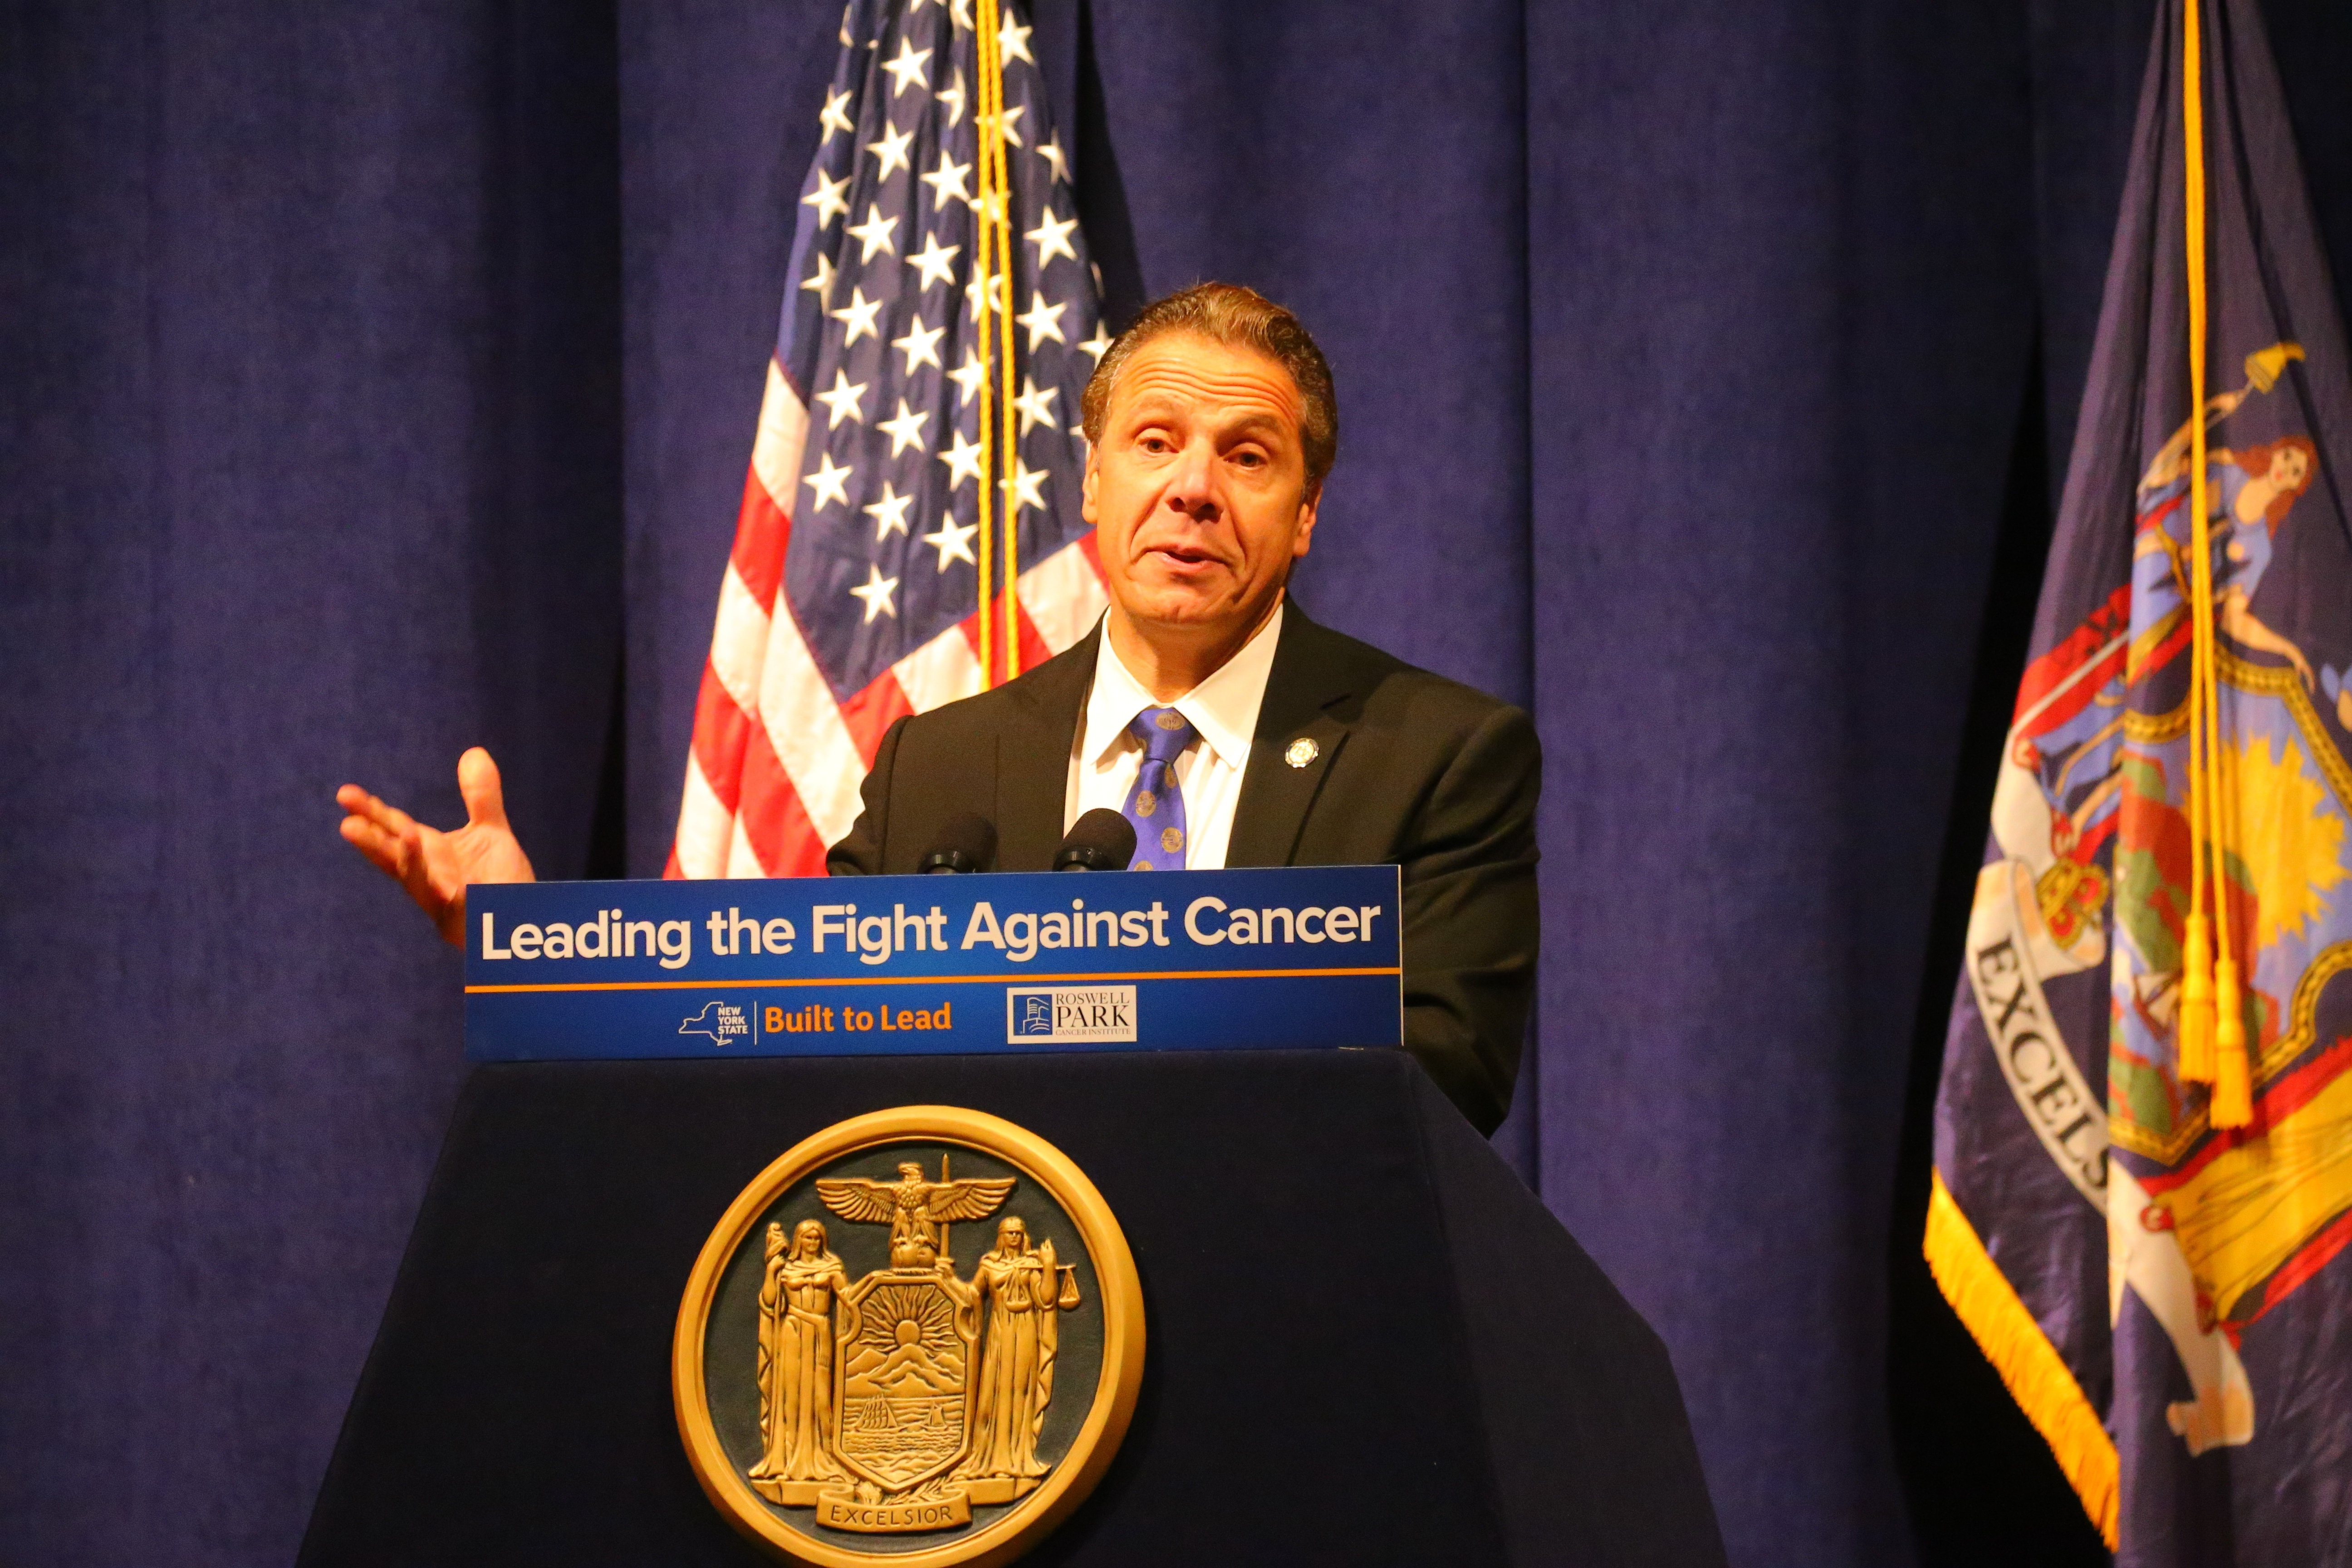 Gov. Andrew M. Cuomo addressed a packed auditorium at Roswell Park Cancer Institute on Wednesday. (John Hickey/Buffalo News)